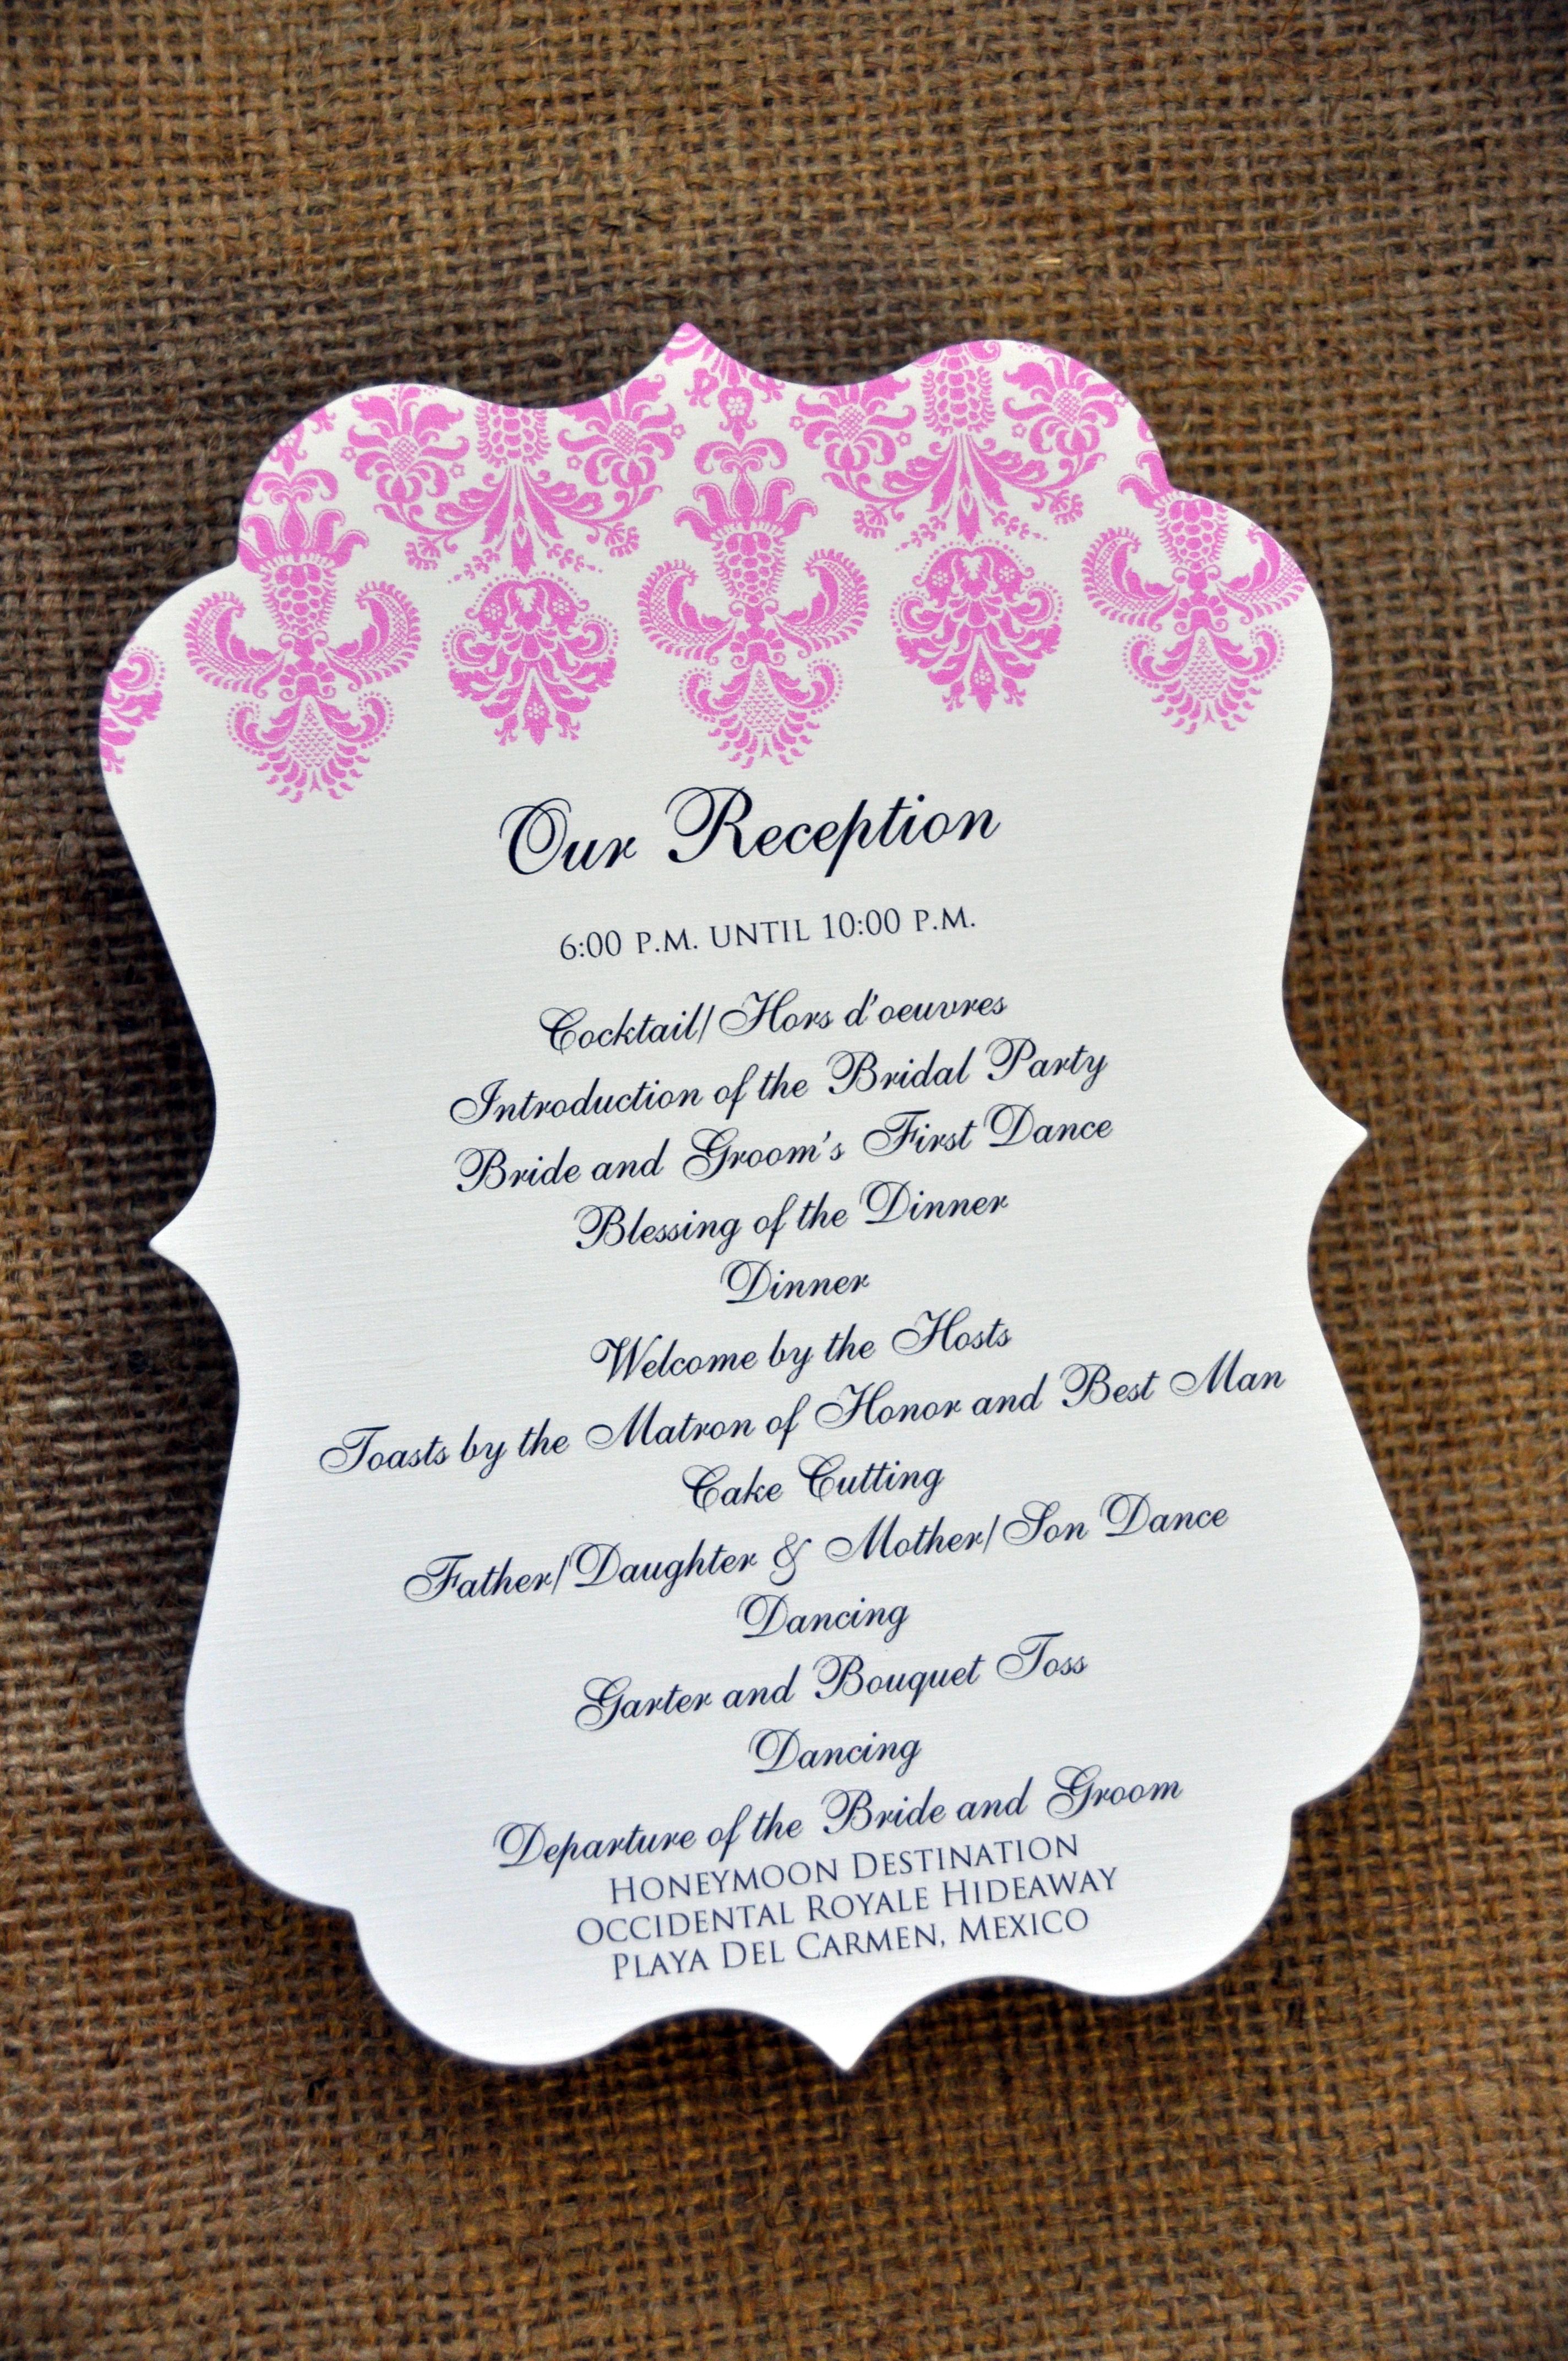 Reception Programs I Like The Paper Style Wedding Reception Program Wedding Programs Modern Wedding Reception